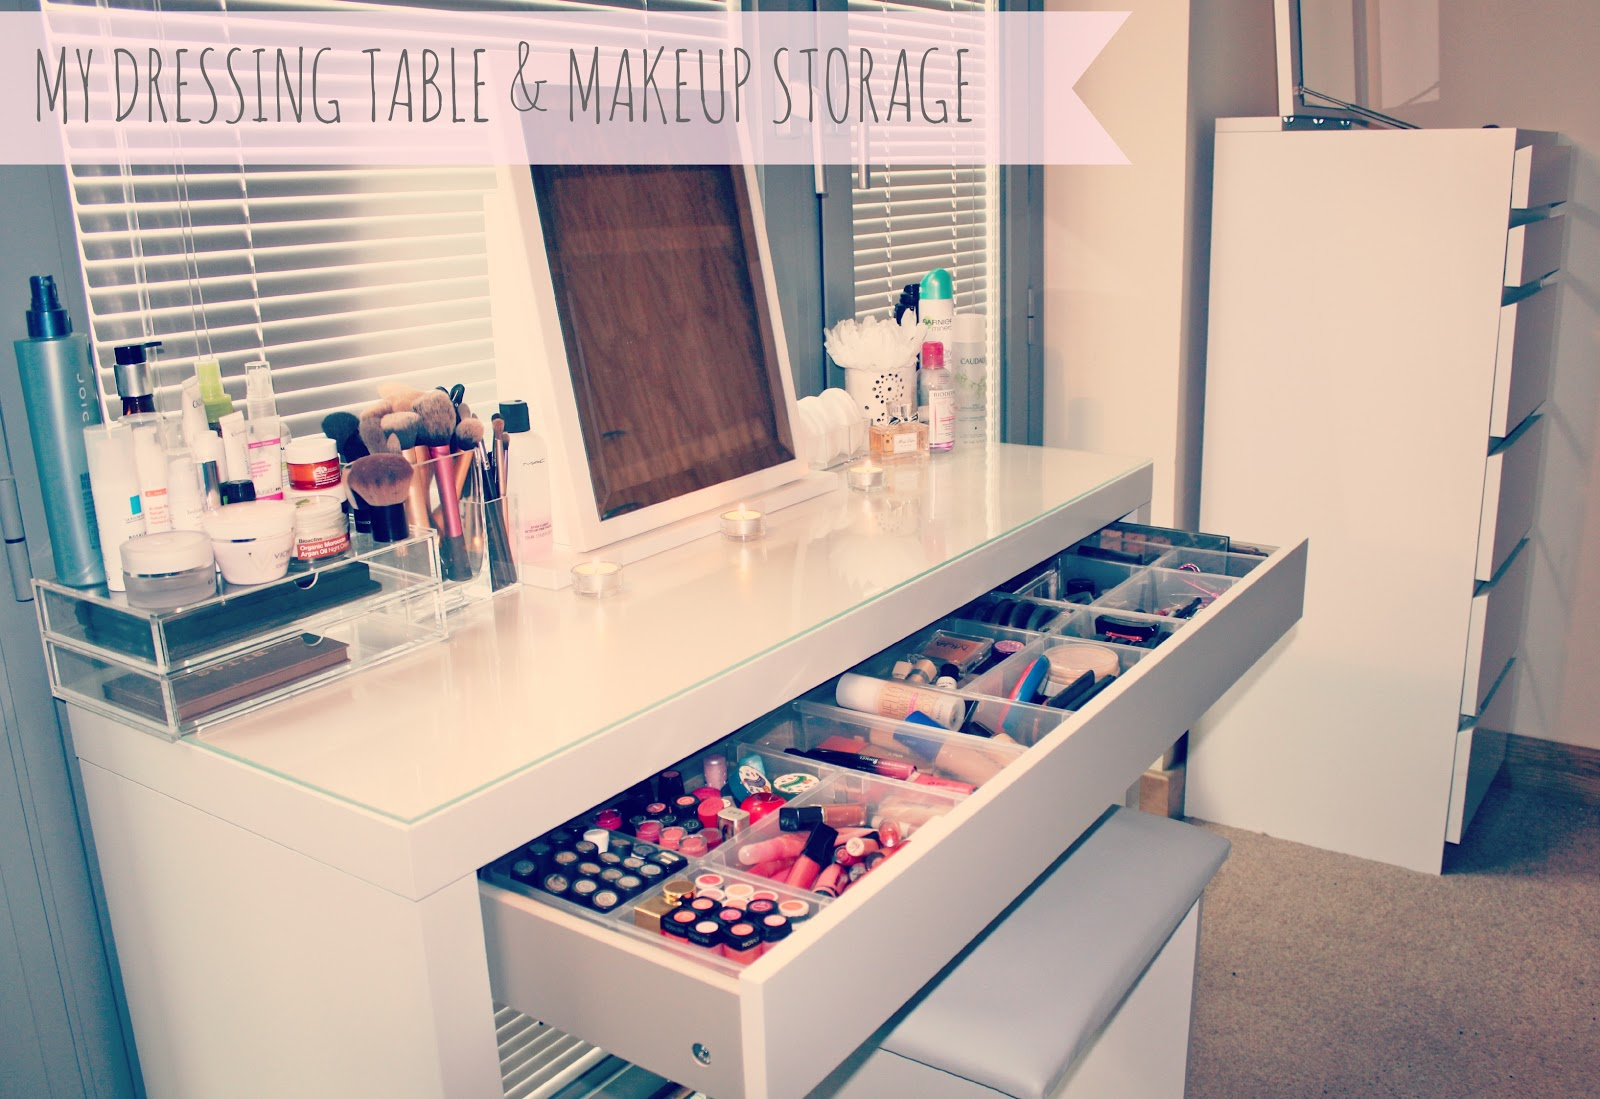 My makeup storage ikea malm dressing table sweet for Dressing room ideas ikea